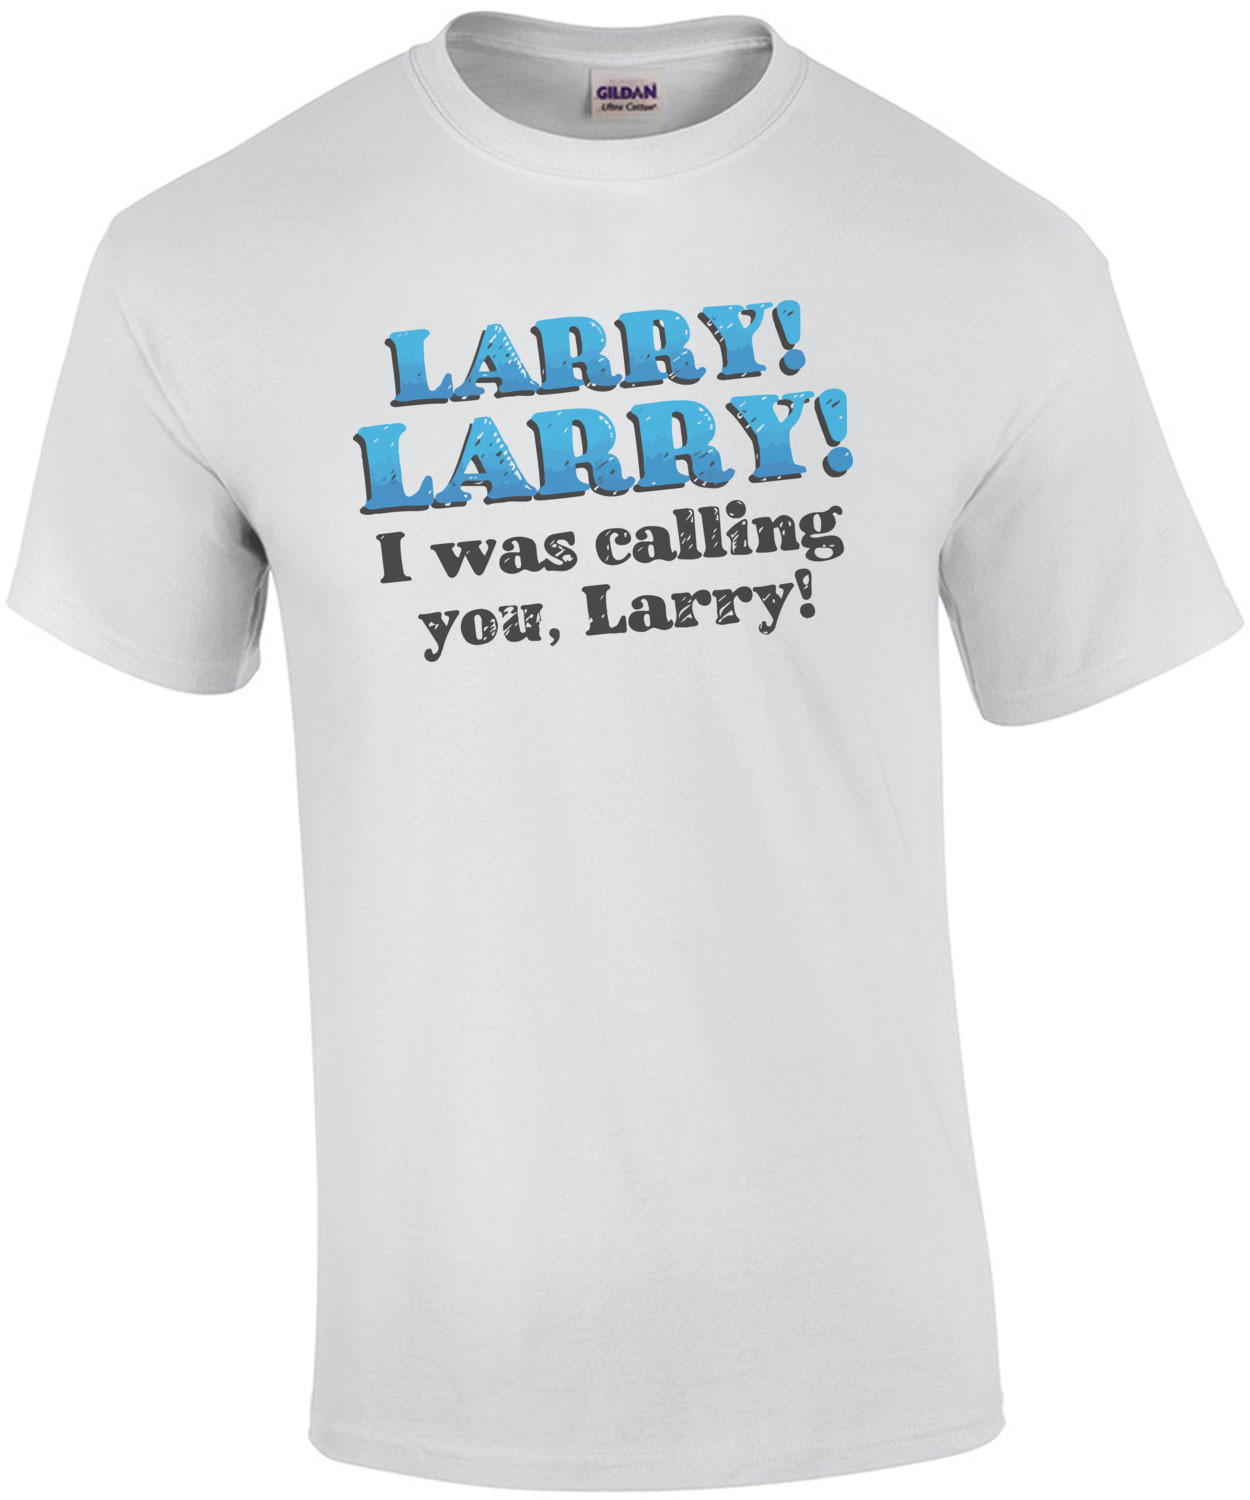 Calling Larry T-Shirt. Larry! Larry! I was calling you, Larry! Impractical Jokers T-Shirt